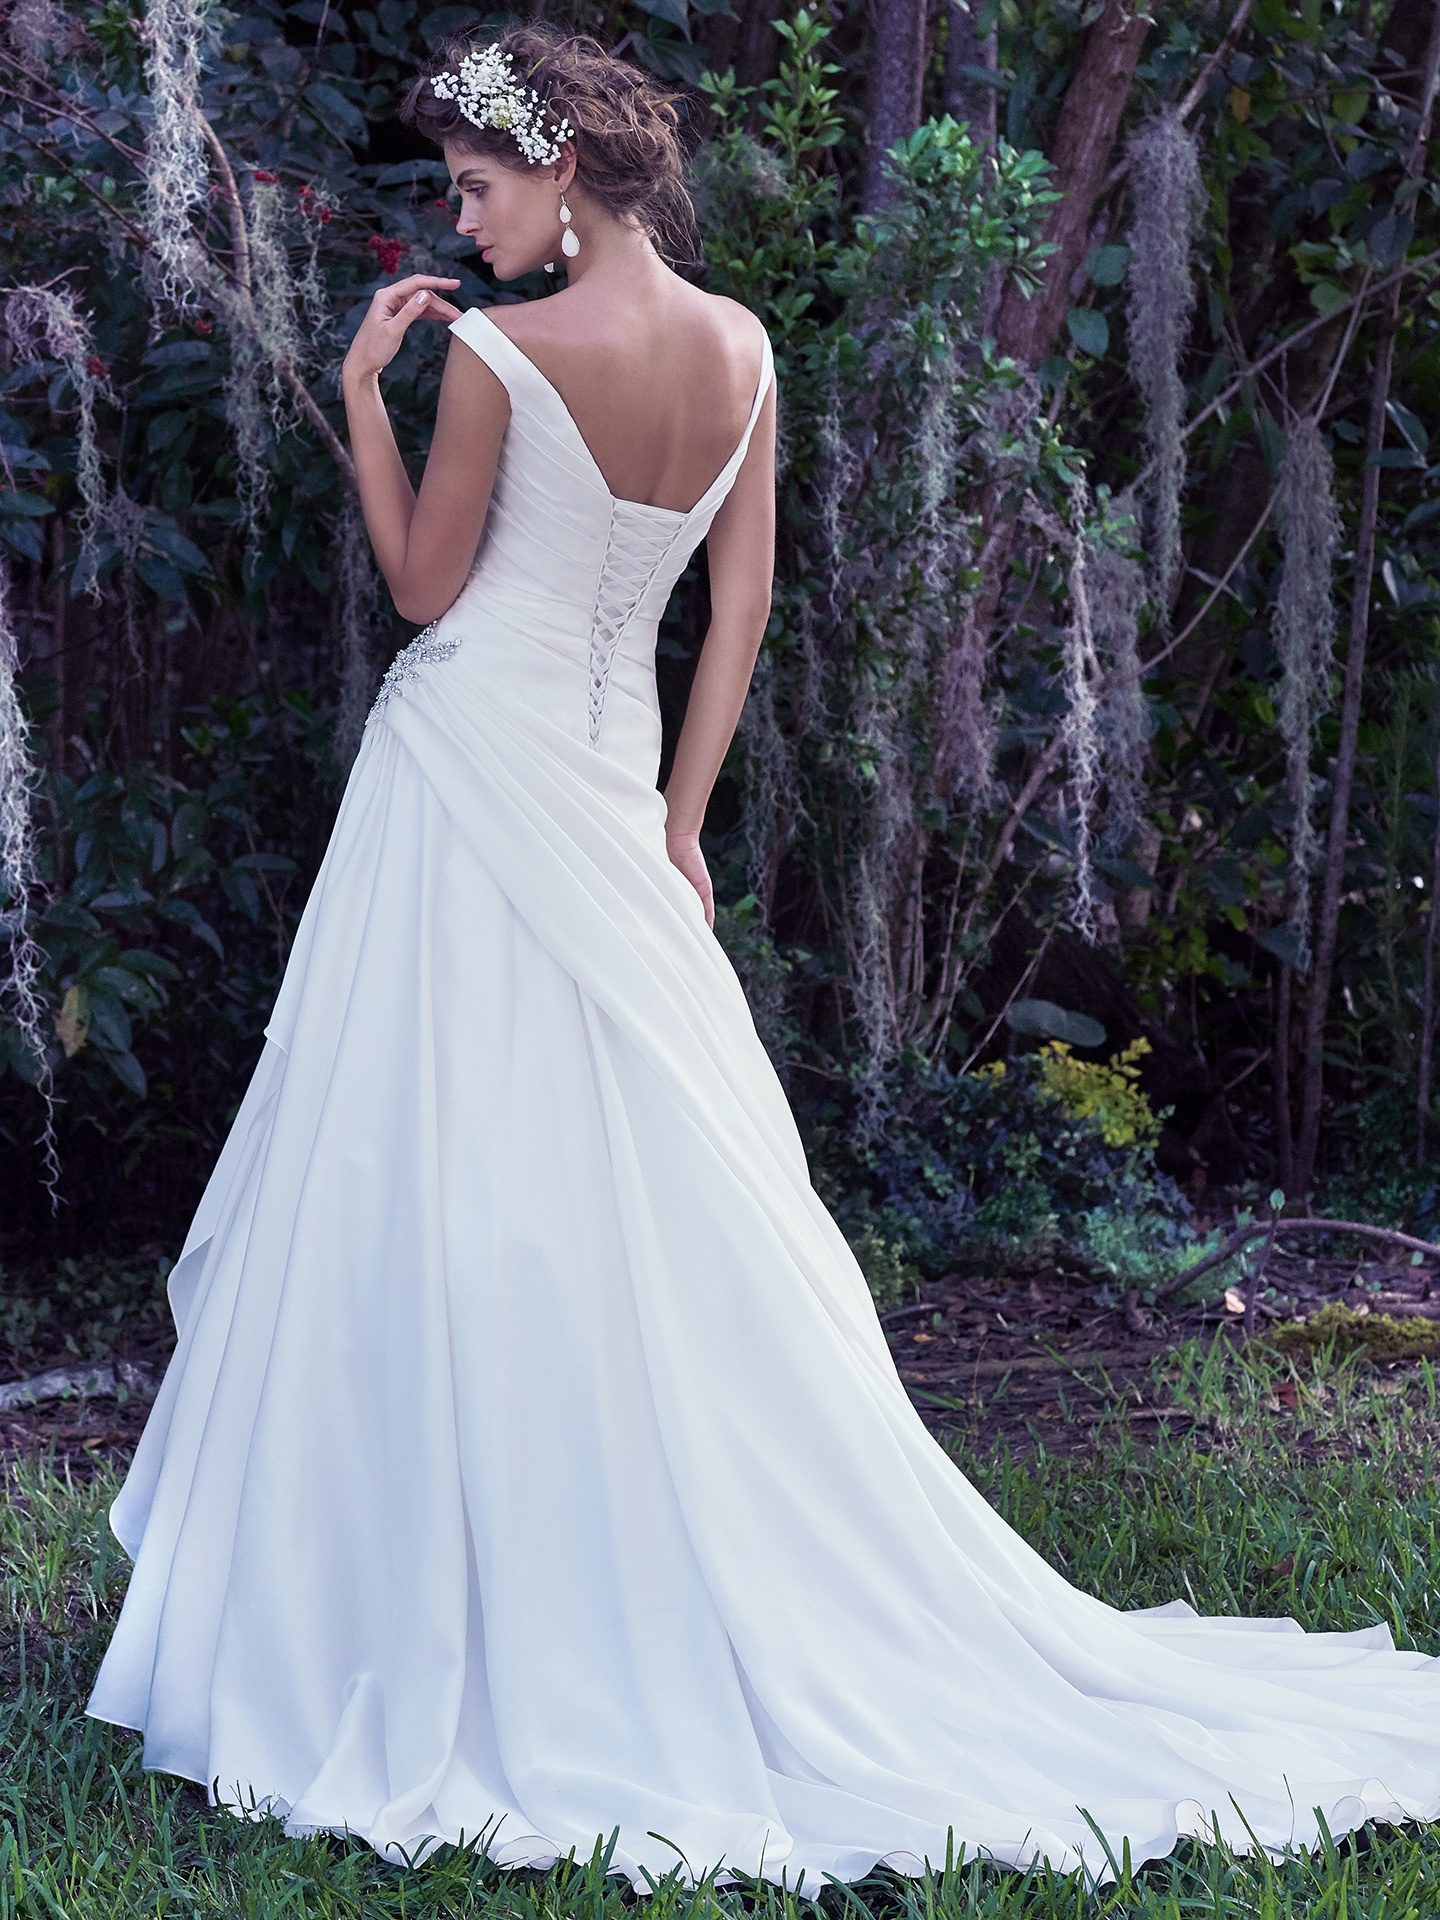 Asymmetrical Ruching Adds Movement and Dimension. Wedding Gowns that Look Great in Photos - Harper asymmetrical silk wedding dress with off-the-shoulder sleeves and ruching on the bodice.